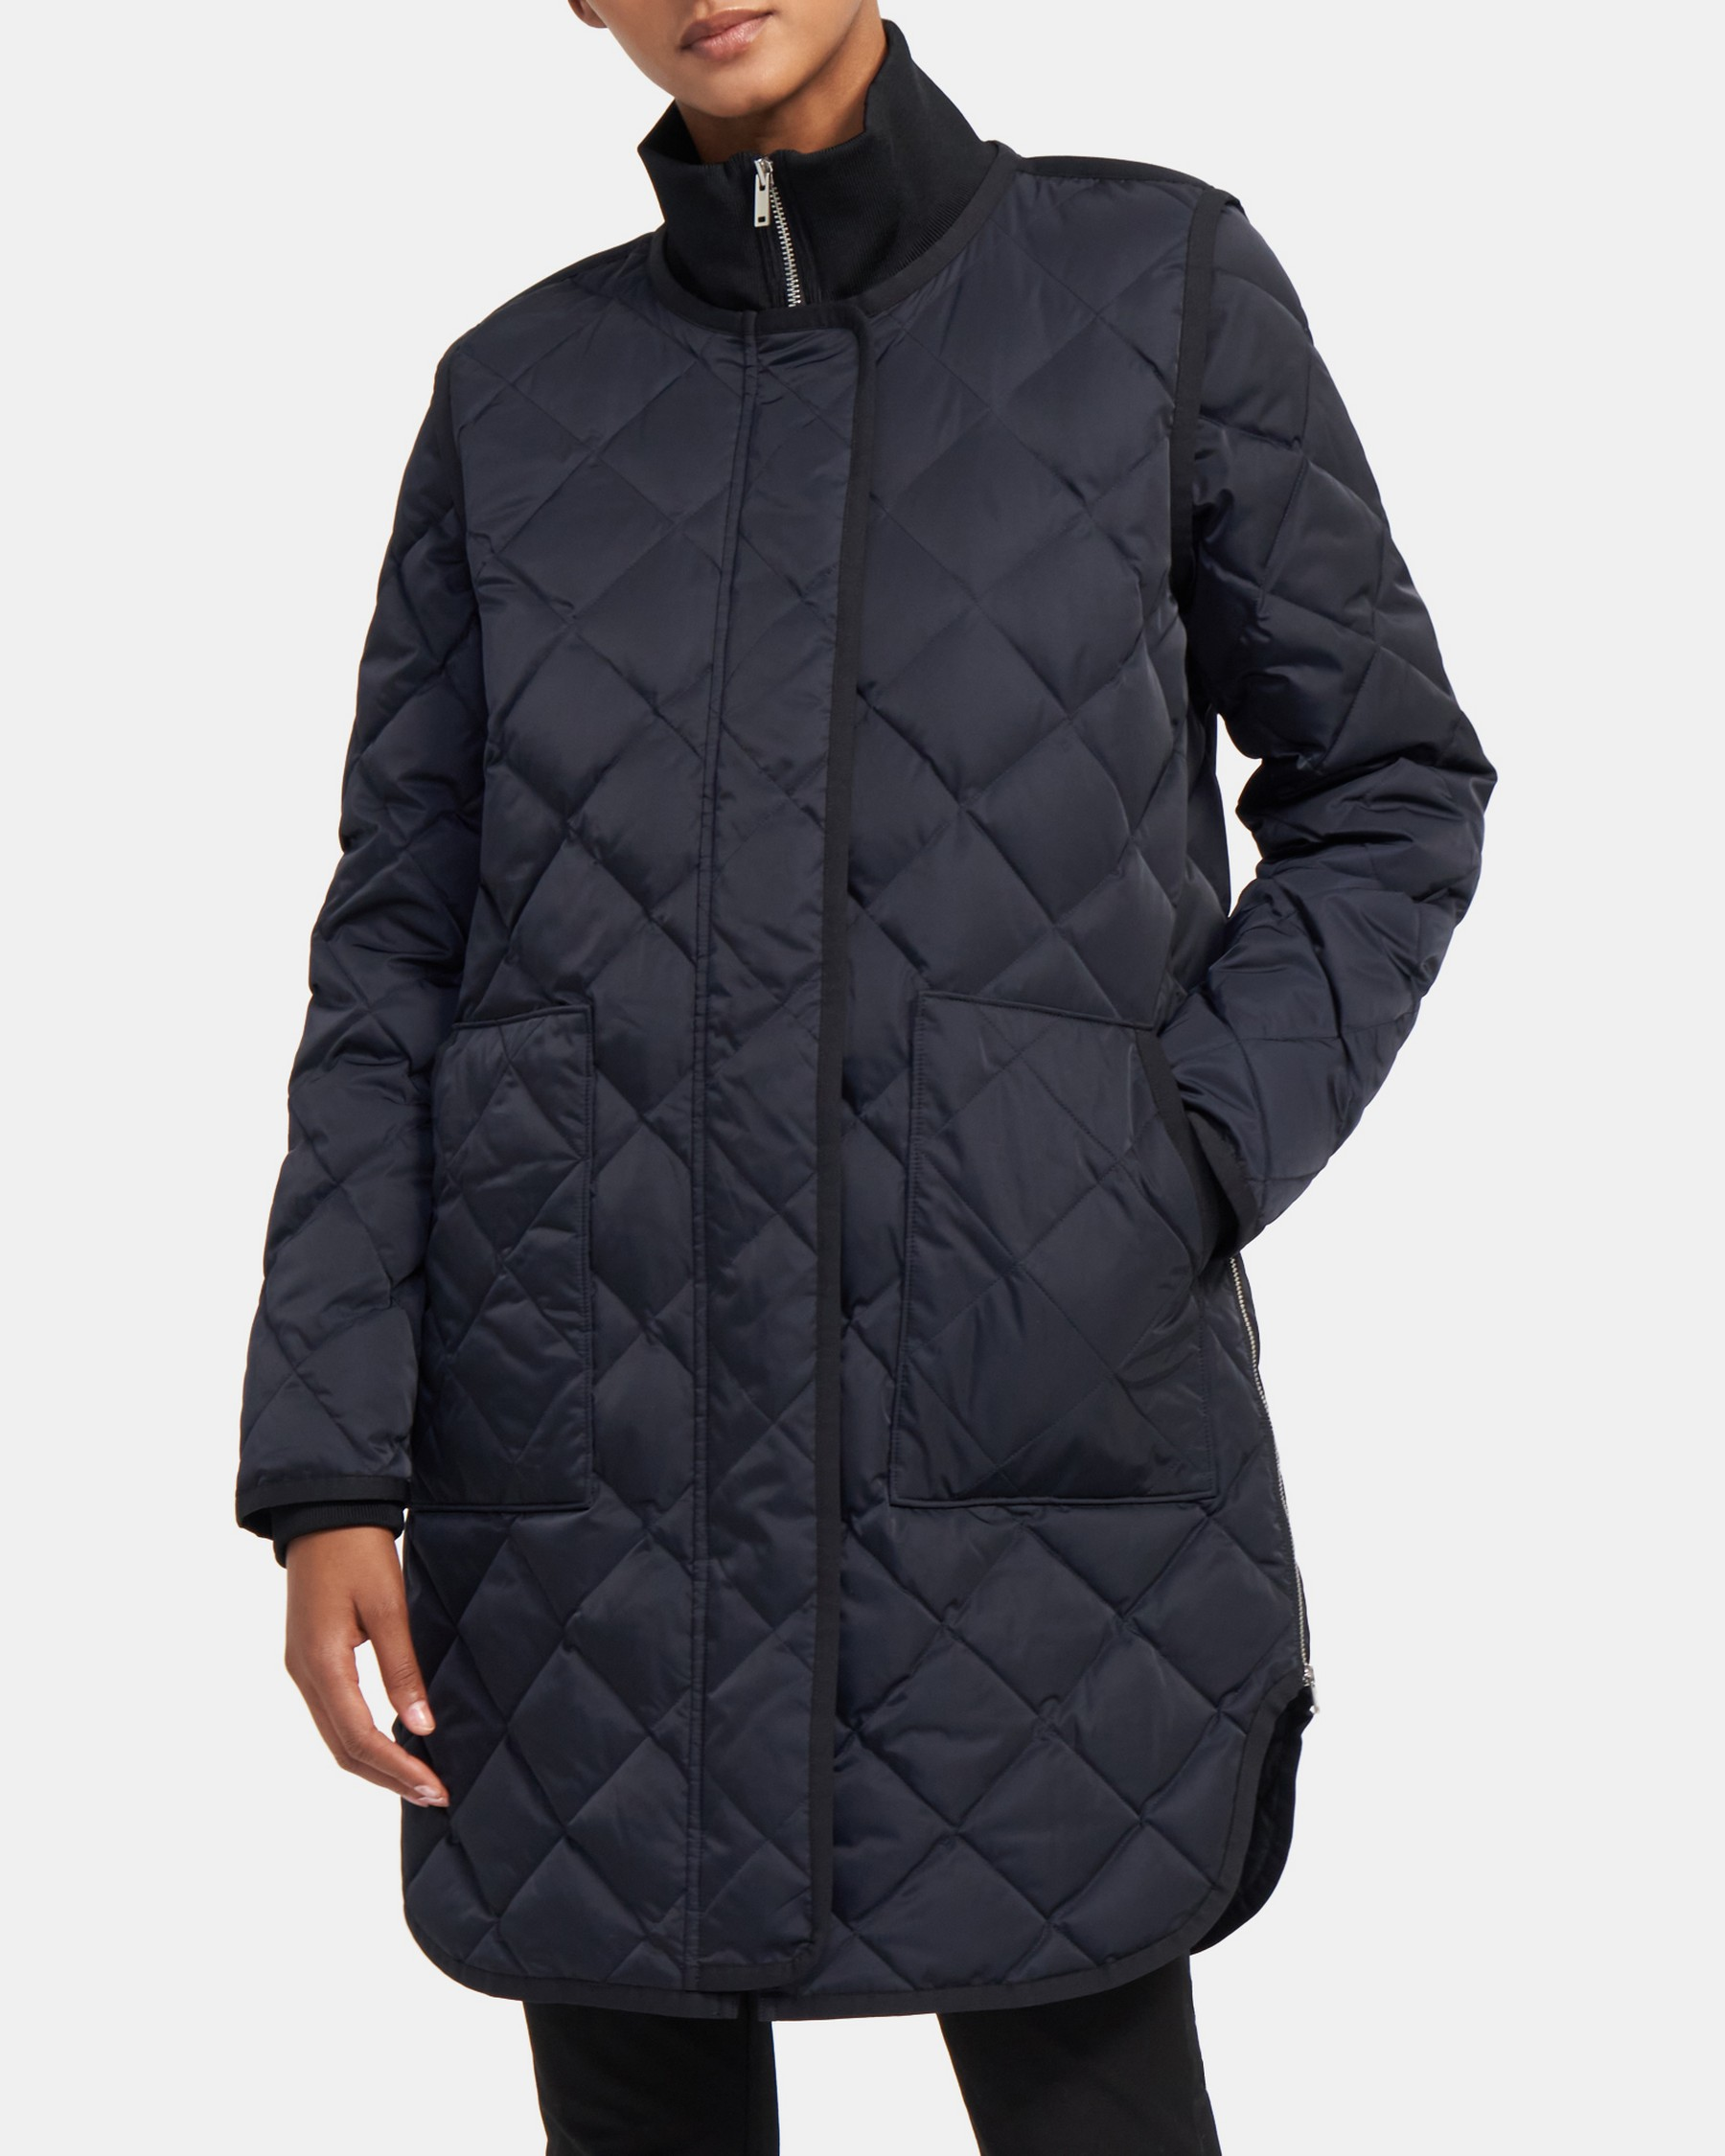 Theory Quilted Jacket in Taffeta